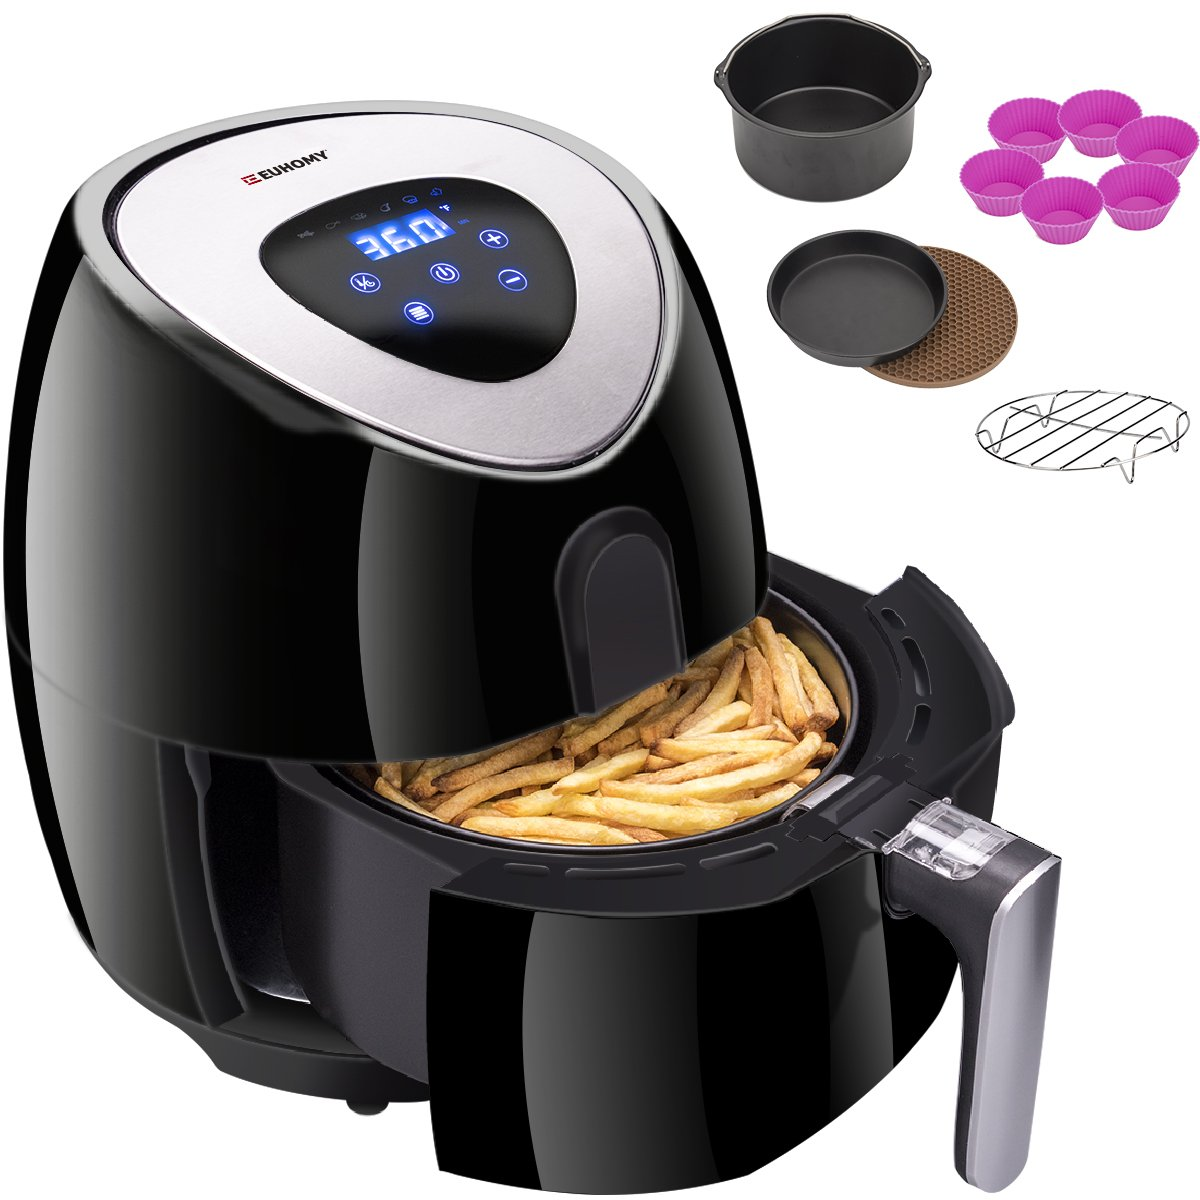 Euhomy 4.2Qt, 1500W-Comes with Recipes & Cookbook & 6Pcs Air Fryer Accessories- Touch Screen Control - Easy to Clean, 14.6 x 12.8 x 12.8 inches, Black by Euhomy